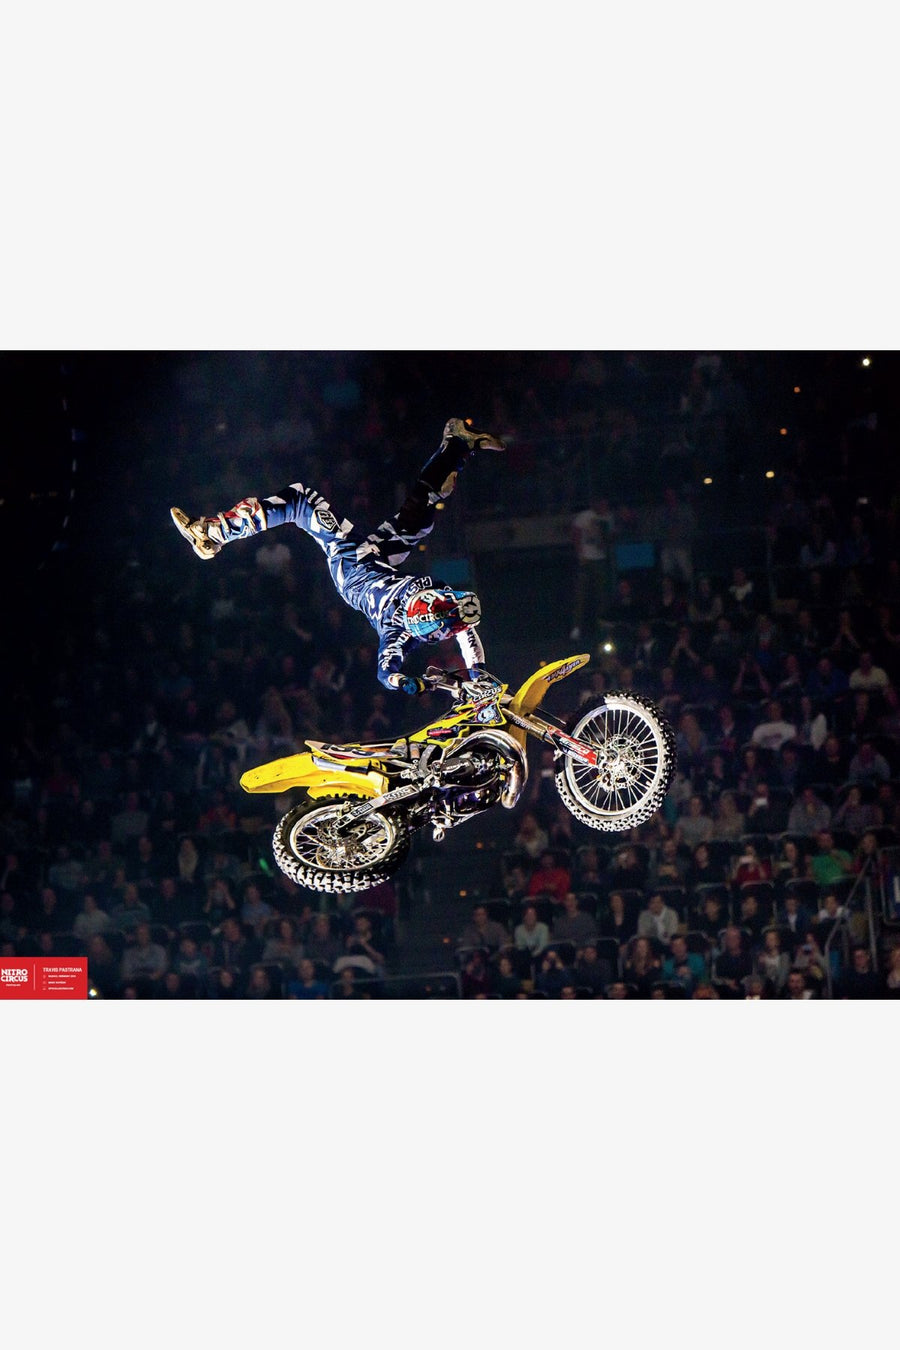 Travis Pastrana Going Big Poster